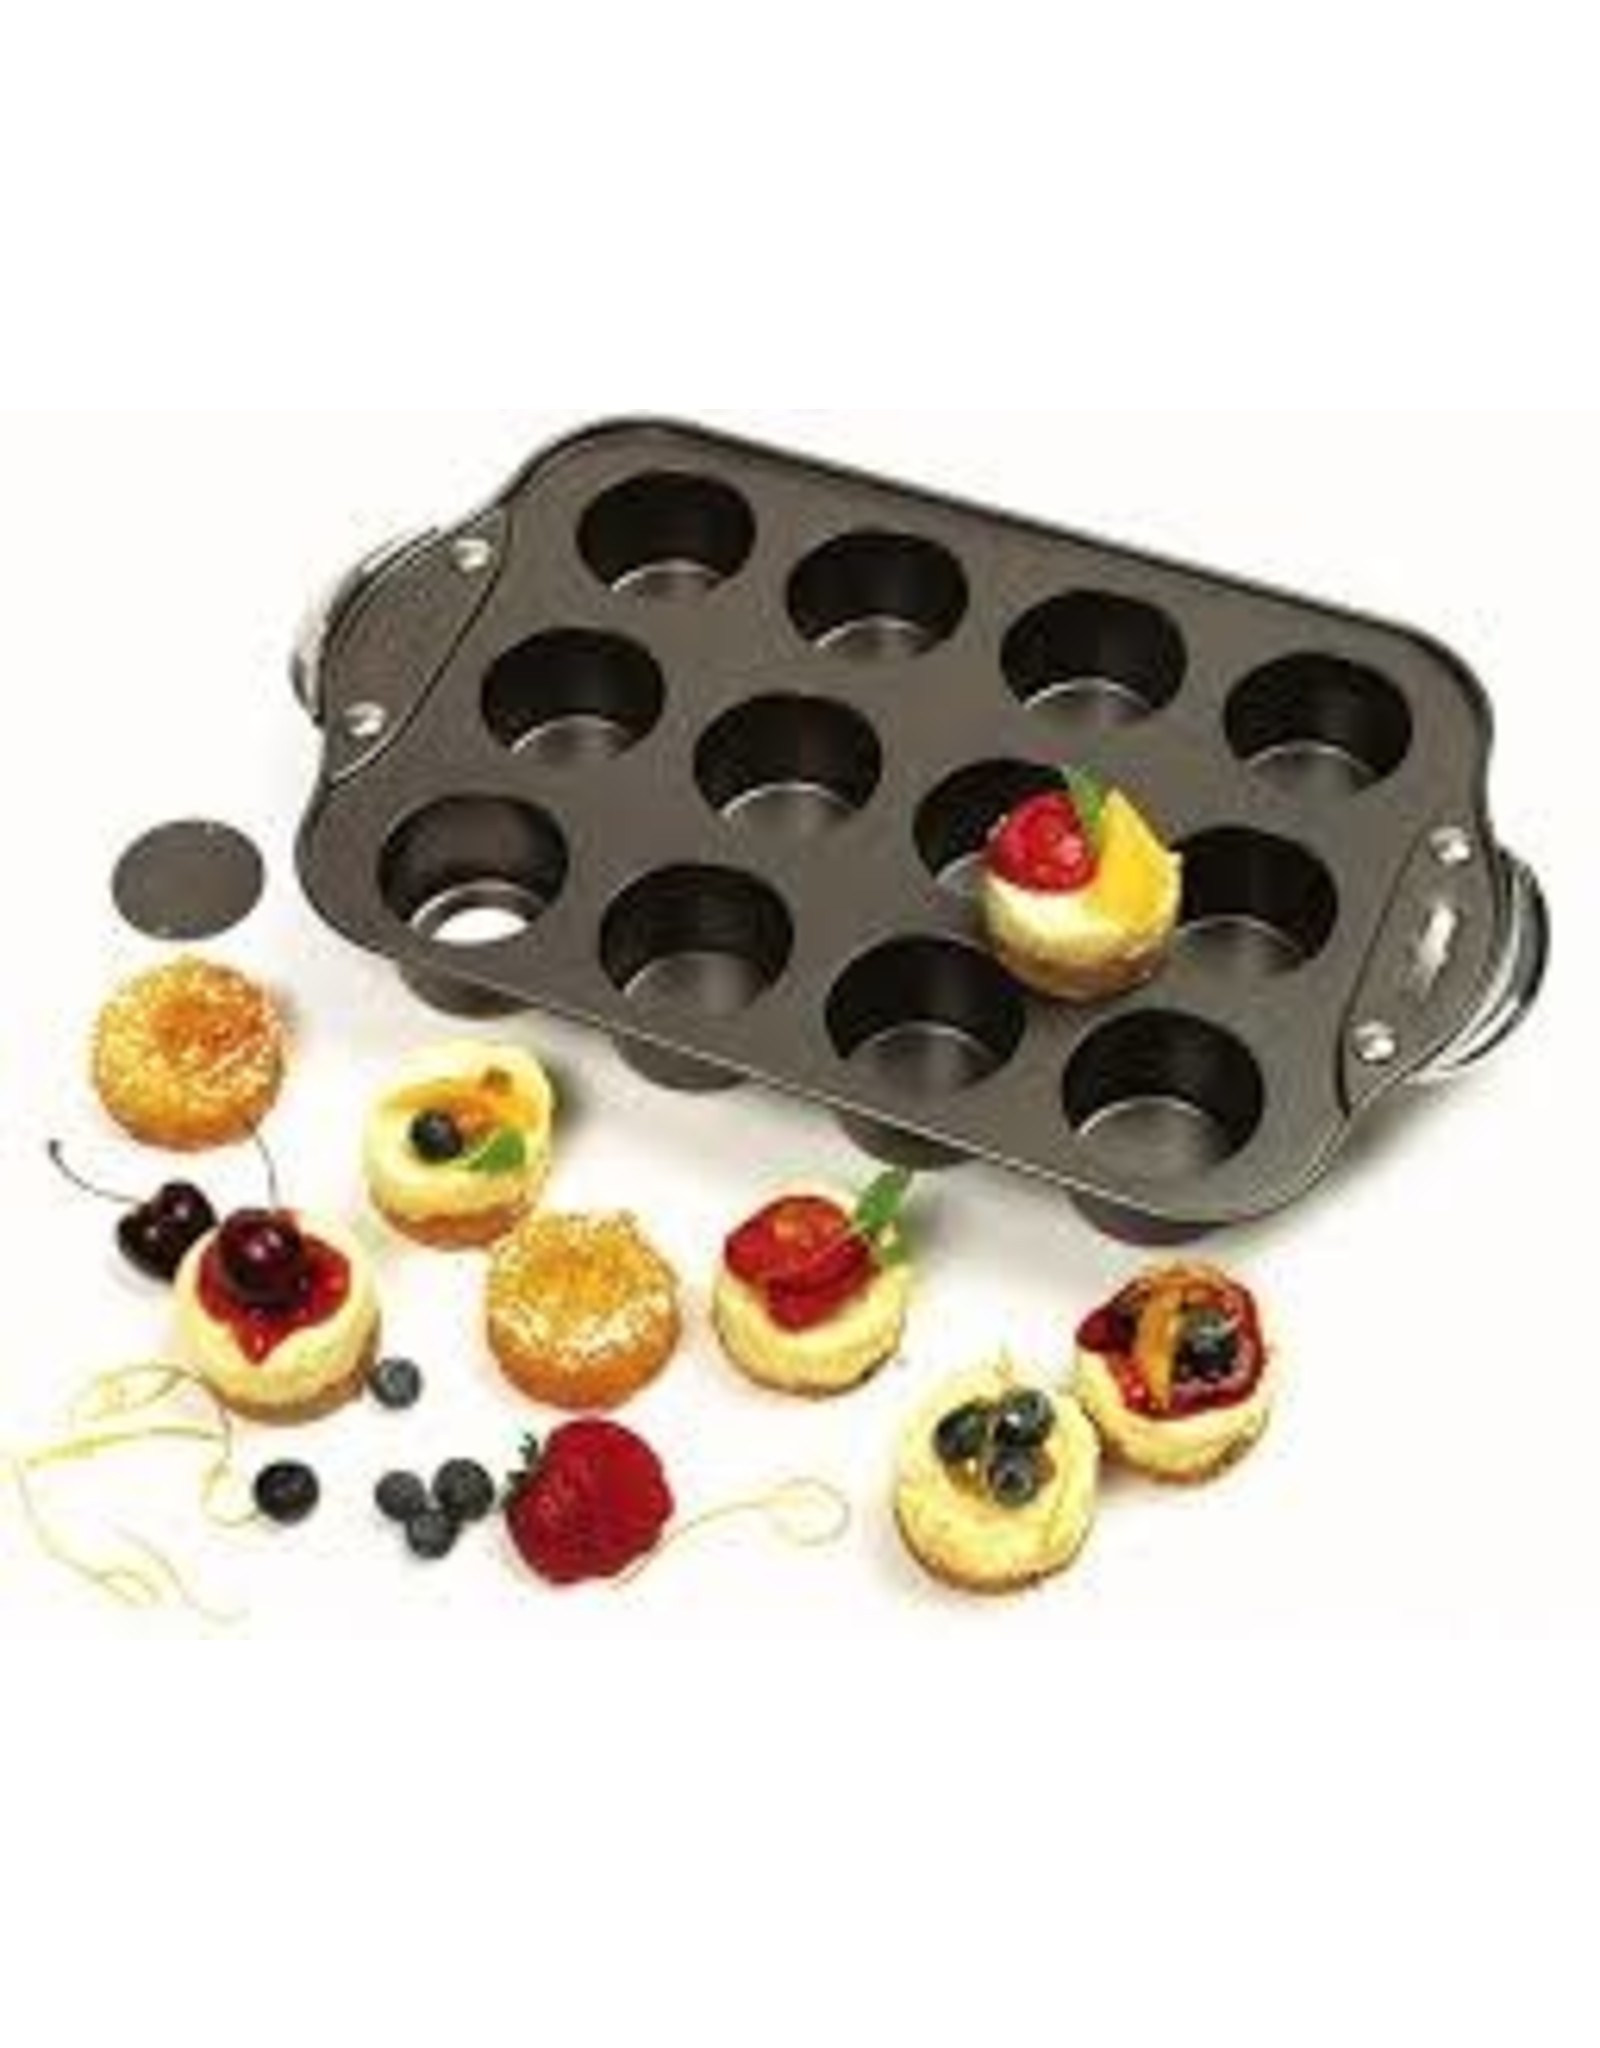 12 MINI CHEESECAKE PAN